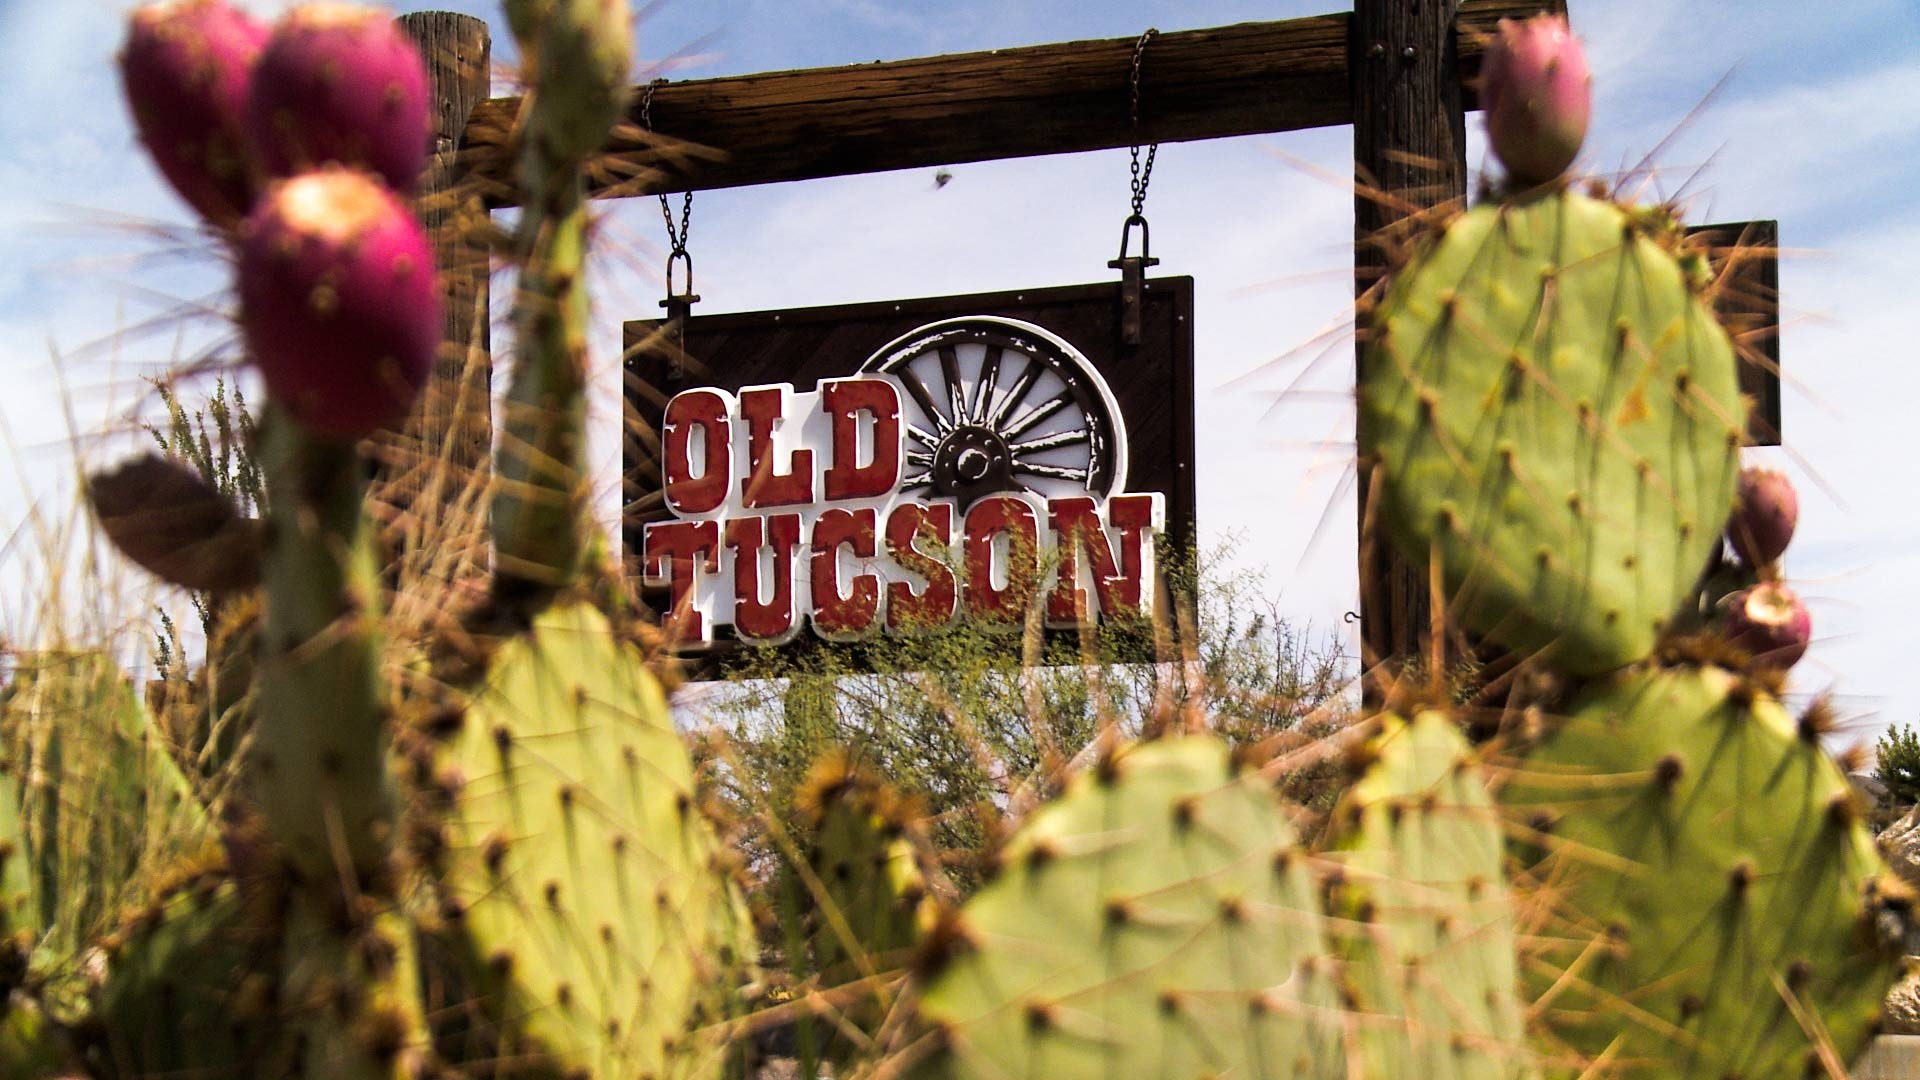 The sign for Old Tucson.